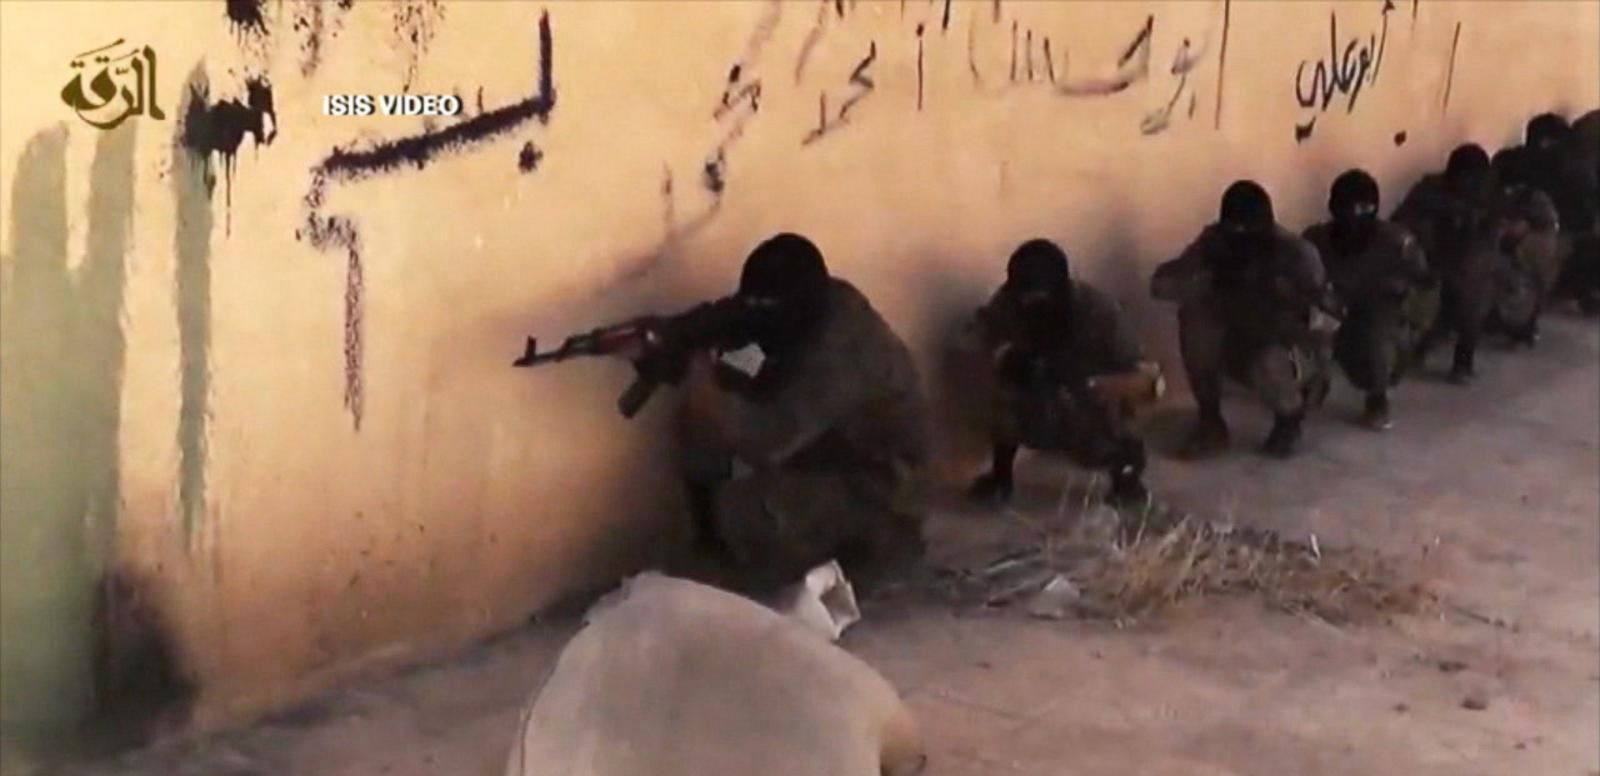 VIDEO: President Obama Sending More Troops to Syria to Fight ISIS